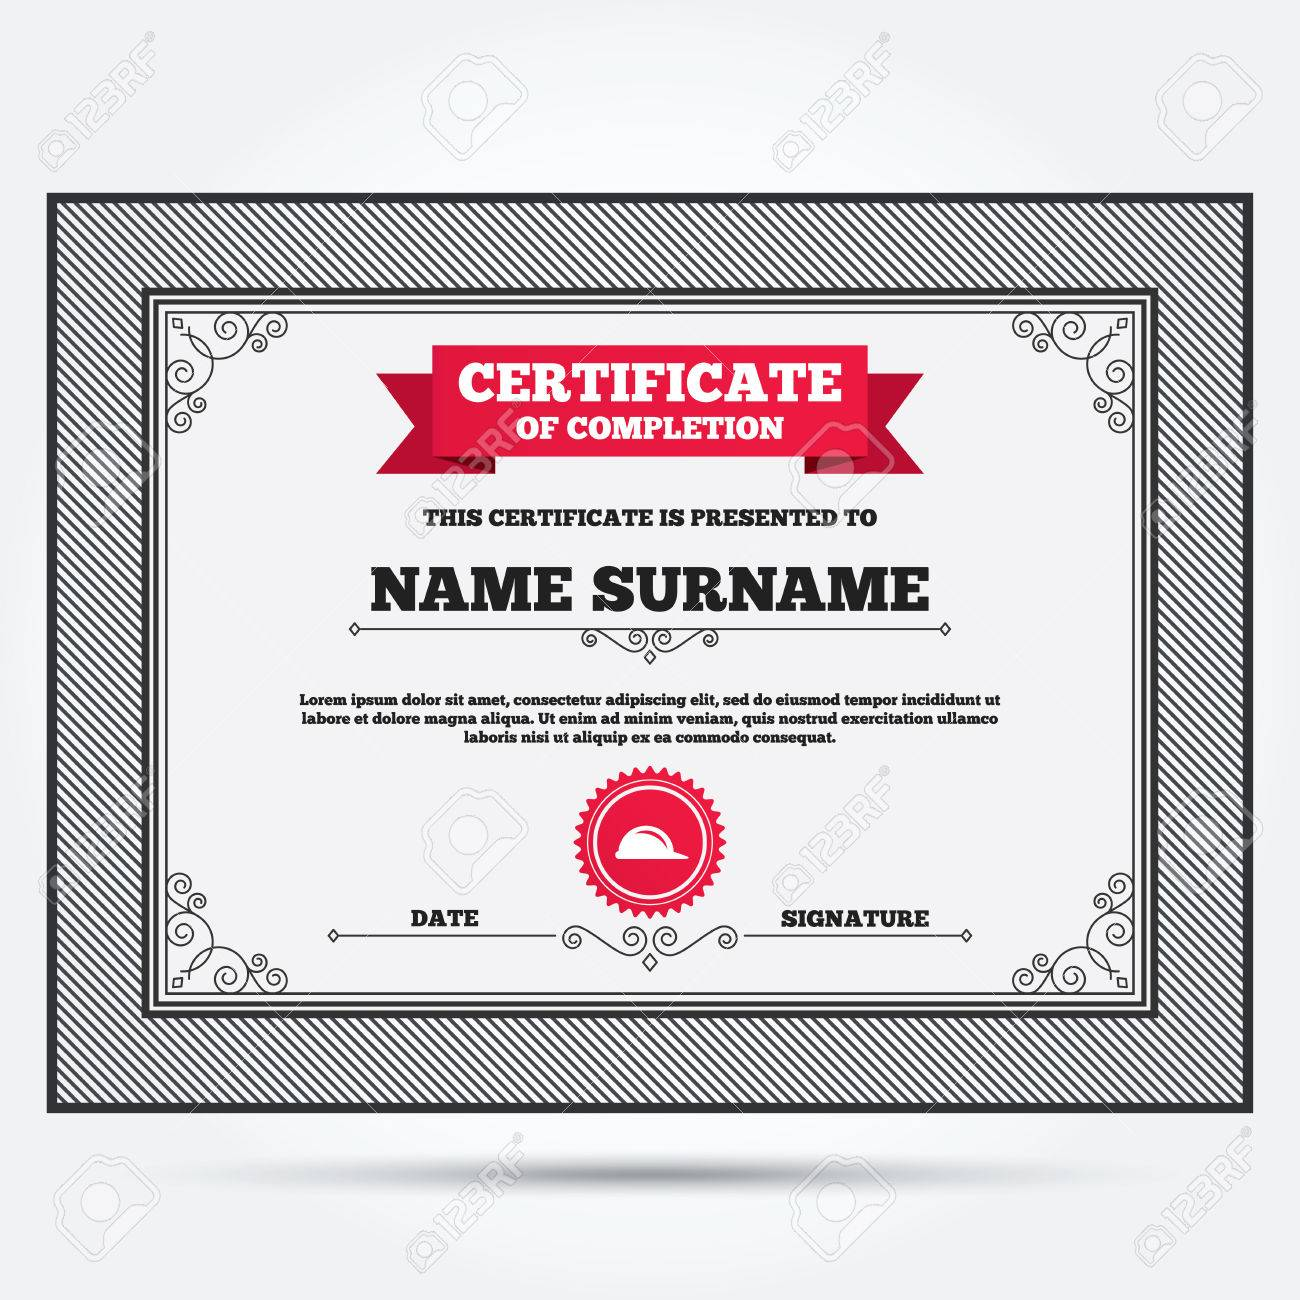 Certificate of completion hard hat sign icon construction helmet certificate of completion hard hat sign icon construction helmet symbol template with vintage yadclub Images